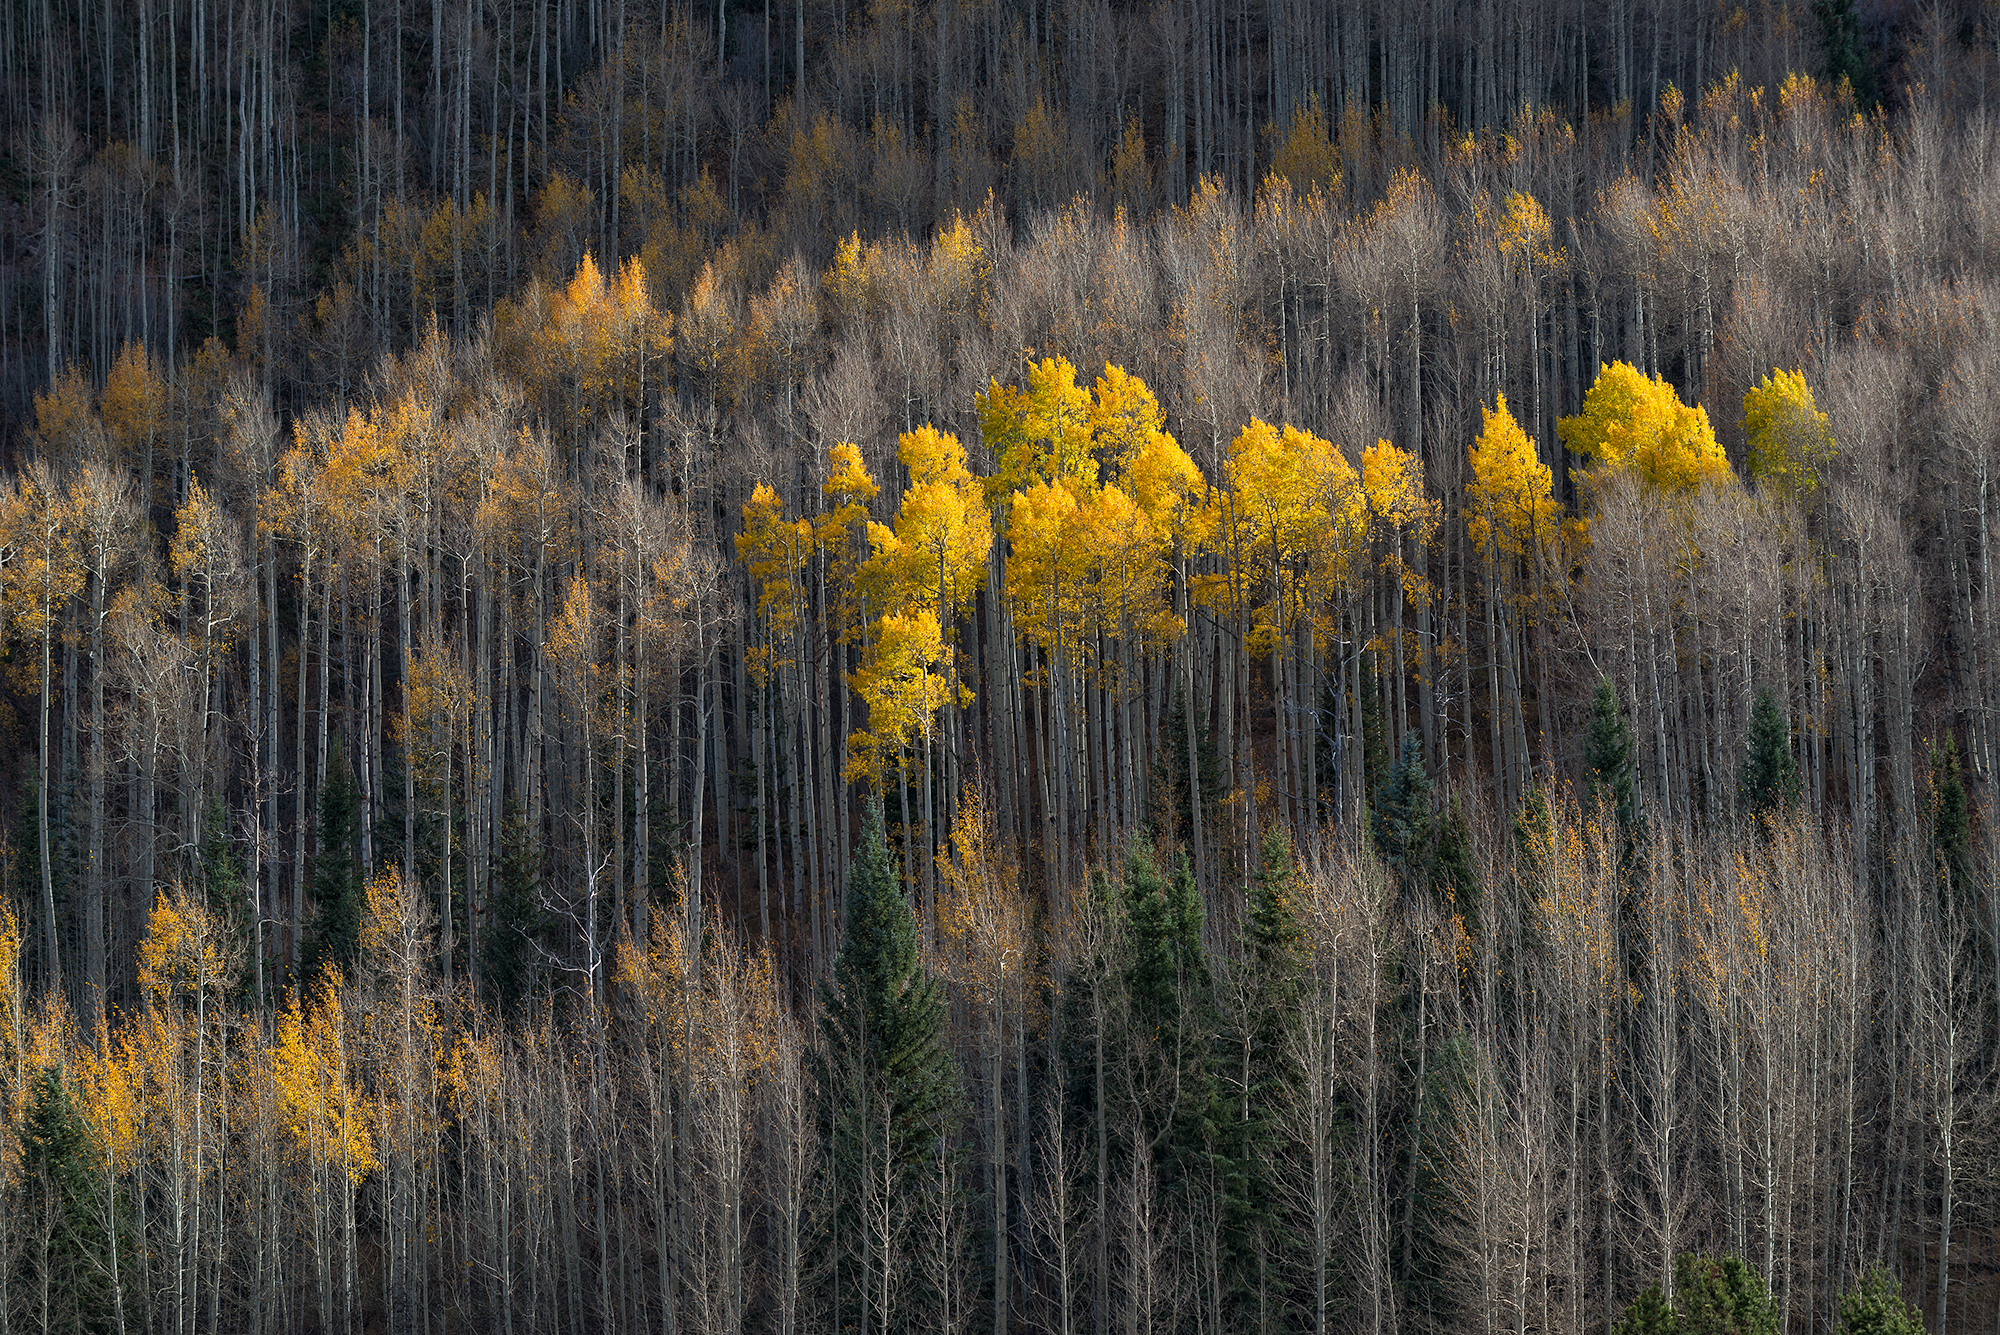 October Aspen, #1. Vail, Colorado, 2016